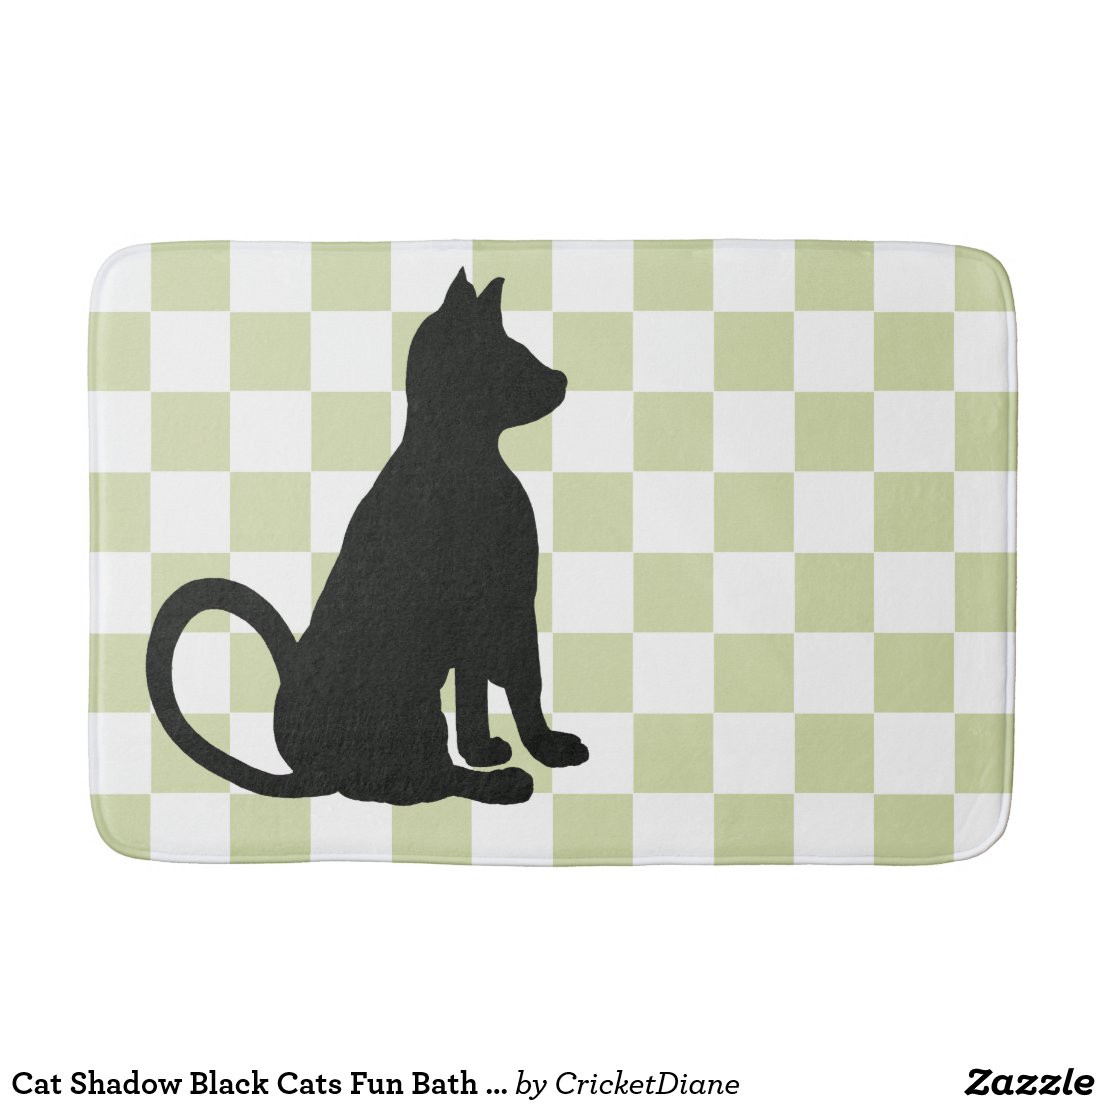 Cat Shadow Black Cats Fun Bath CricketDiane Bathroom Mat